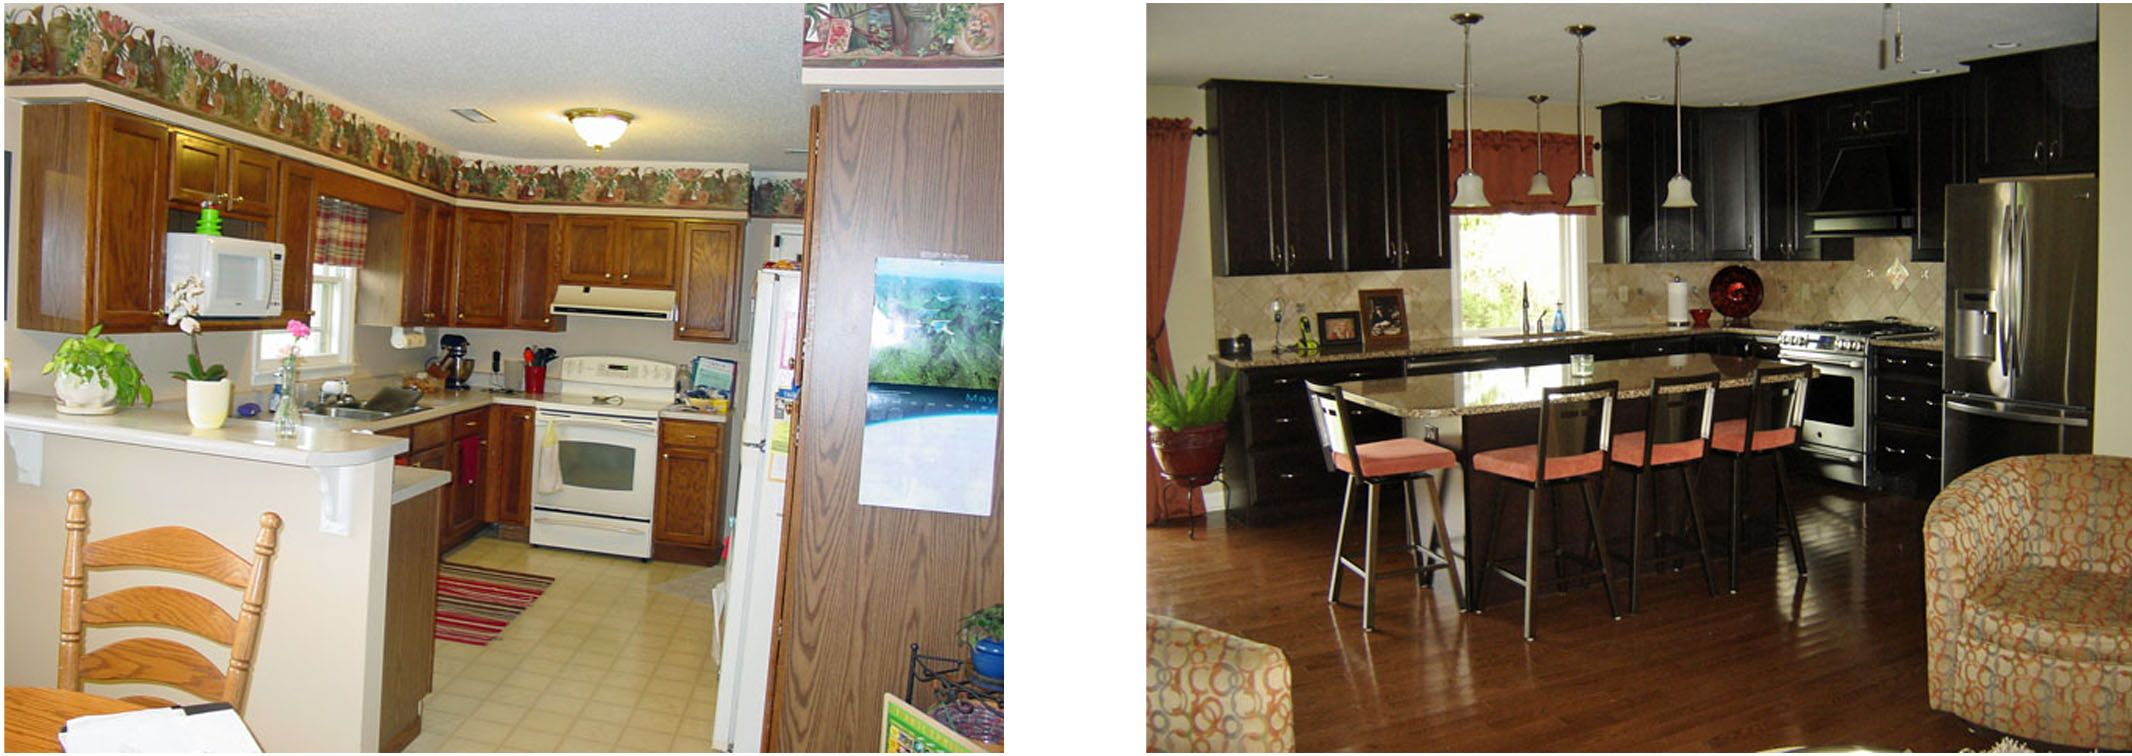 Kitchen Remodel Before And After Removing The Soffit Peninsula And Partial Wall Gave This Home An Kitchen Soffit Remodel Kitchen Expansion Before And After